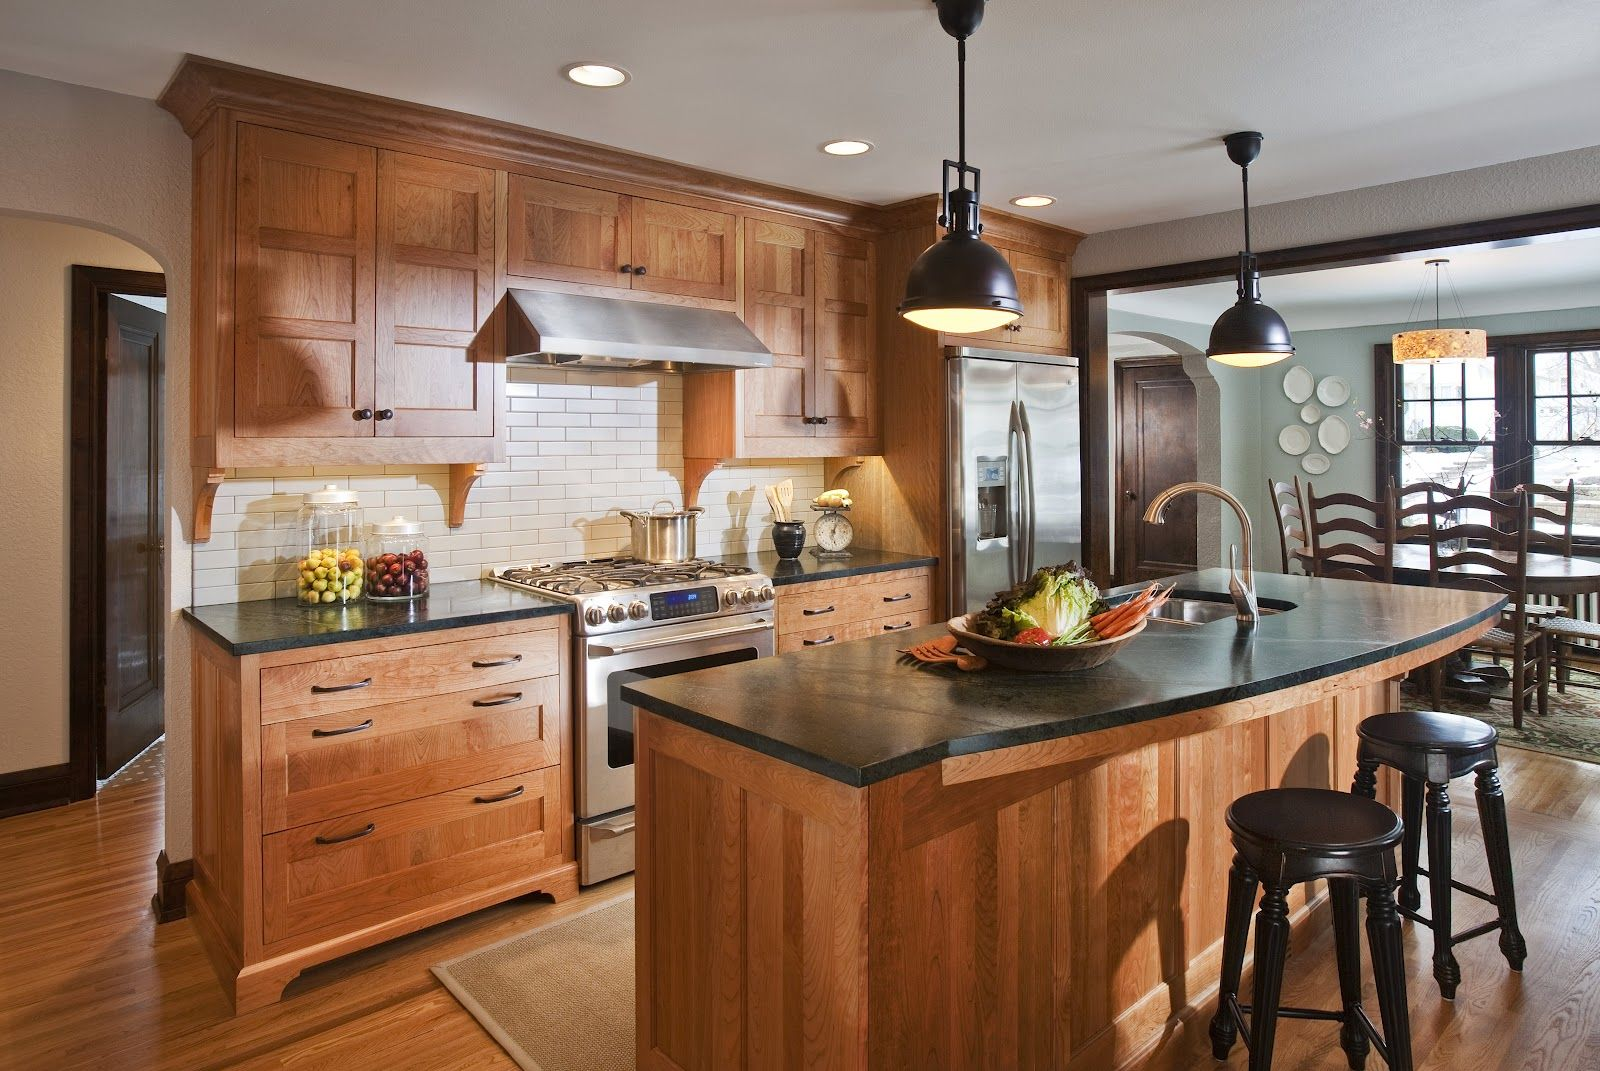 Cottage | Modern: Kitchen design | new home ideas | Pinterest